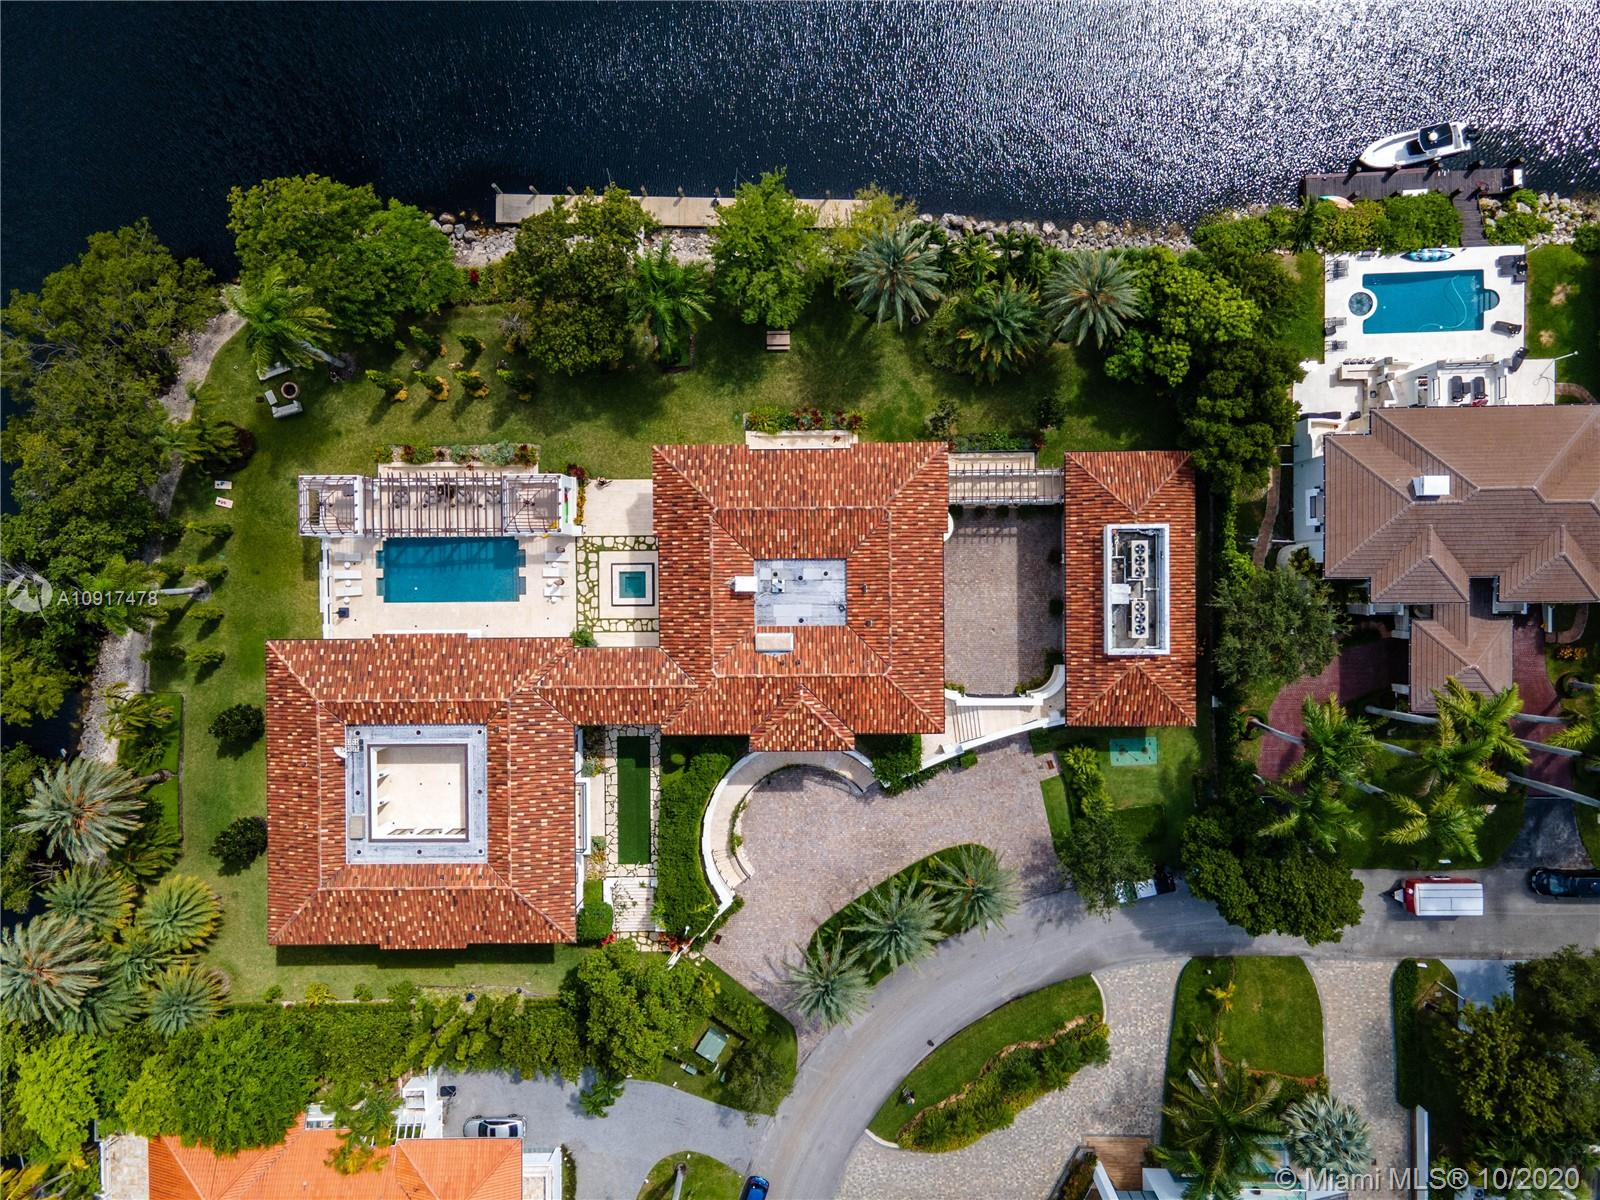 300 Costanera rd- coral-gables-fl-33143-a10917478-Pic01